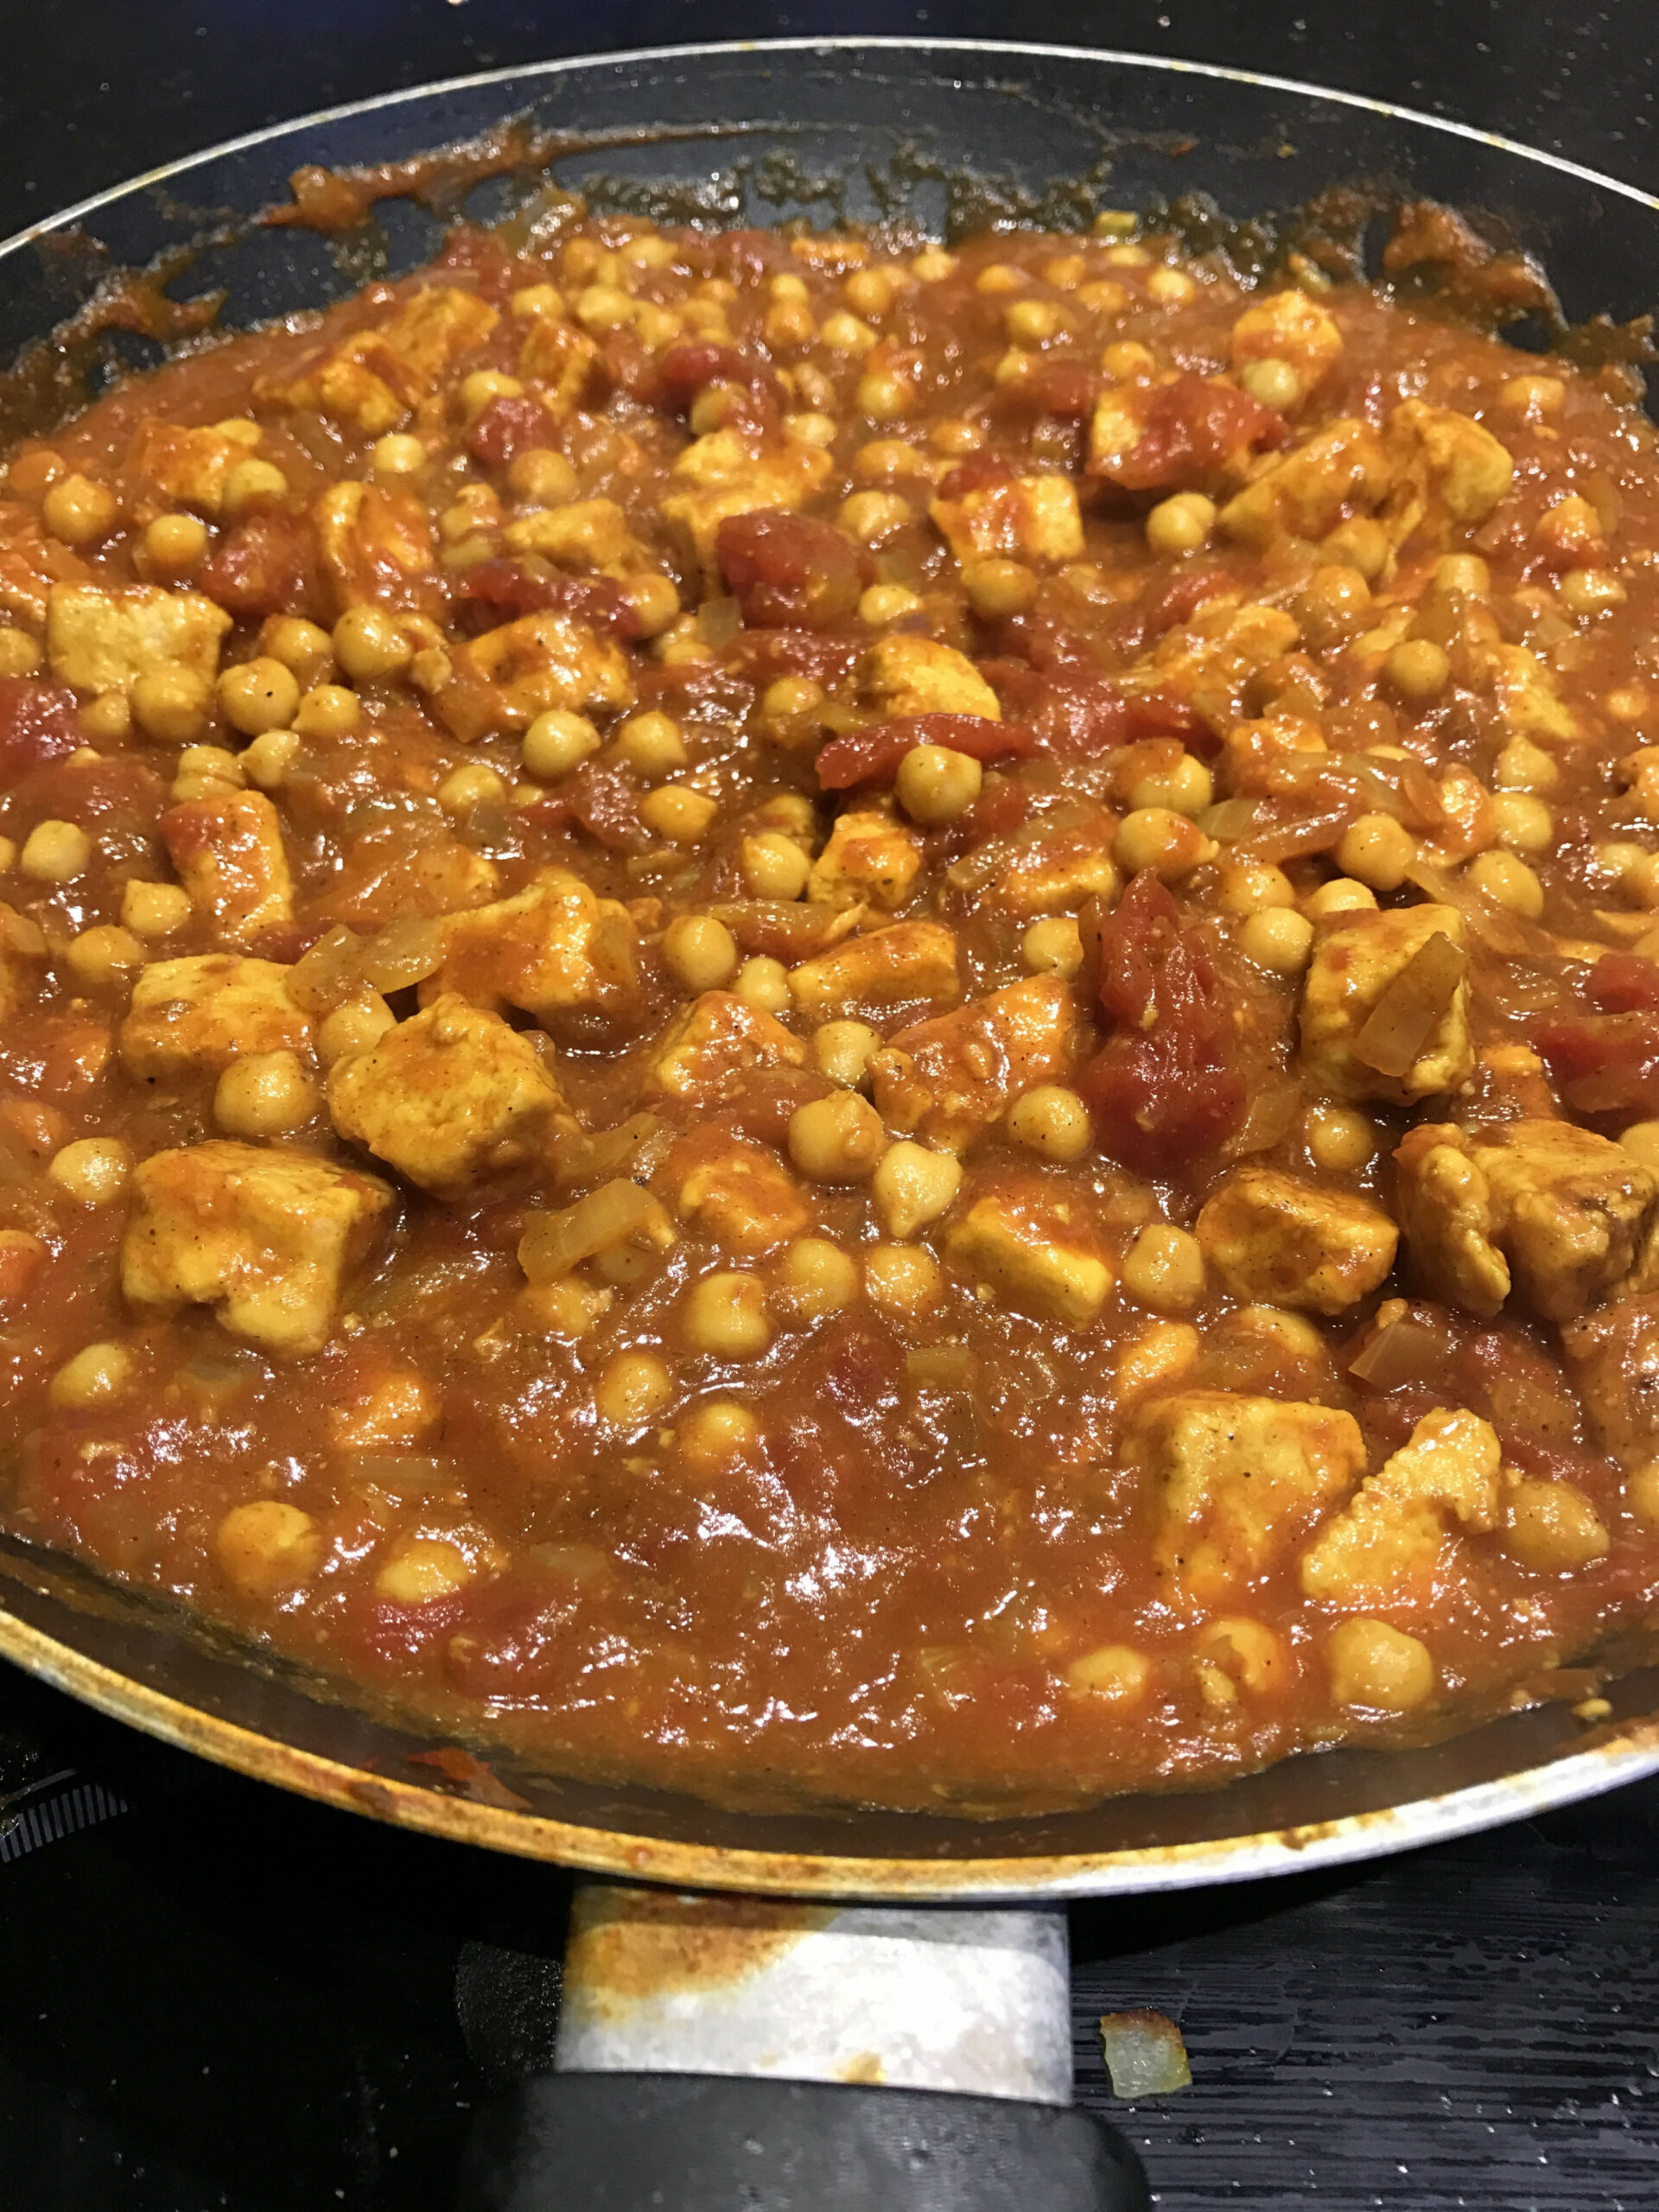 Vegetarian Quorn and chickpea curry recipe - All recipes UK - recipes vegetarian uk